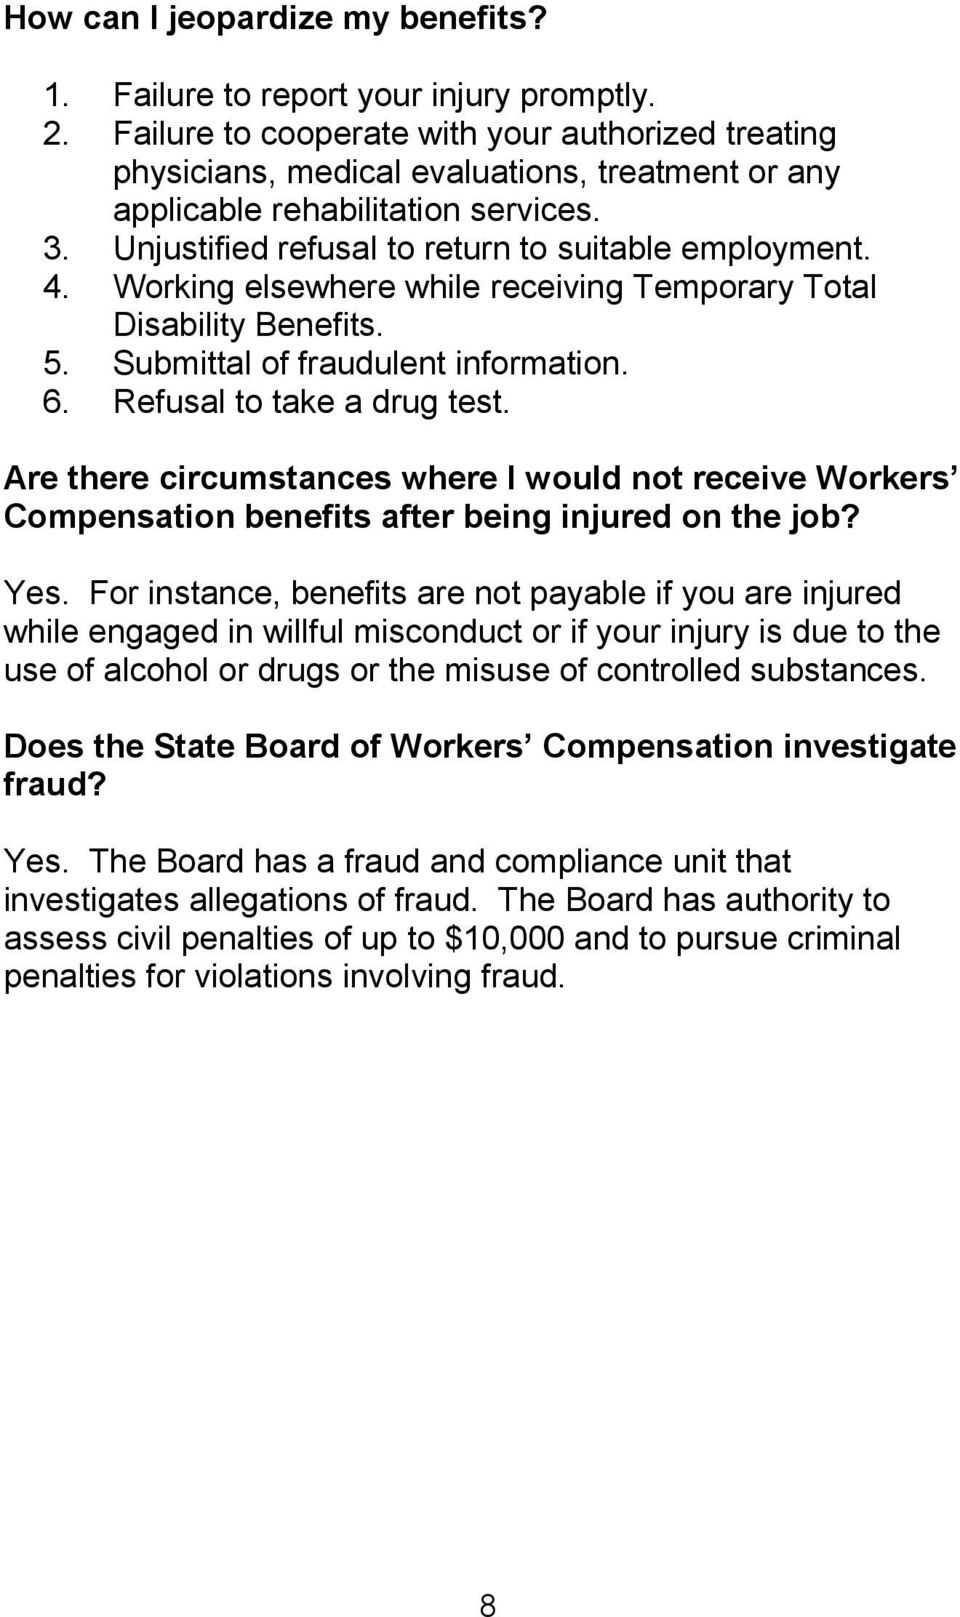 Working elsewhere while receiving Temporary Total Disability Benefits. 5. Submittal of fraudulent information. 6. Refusal to take a drug test.